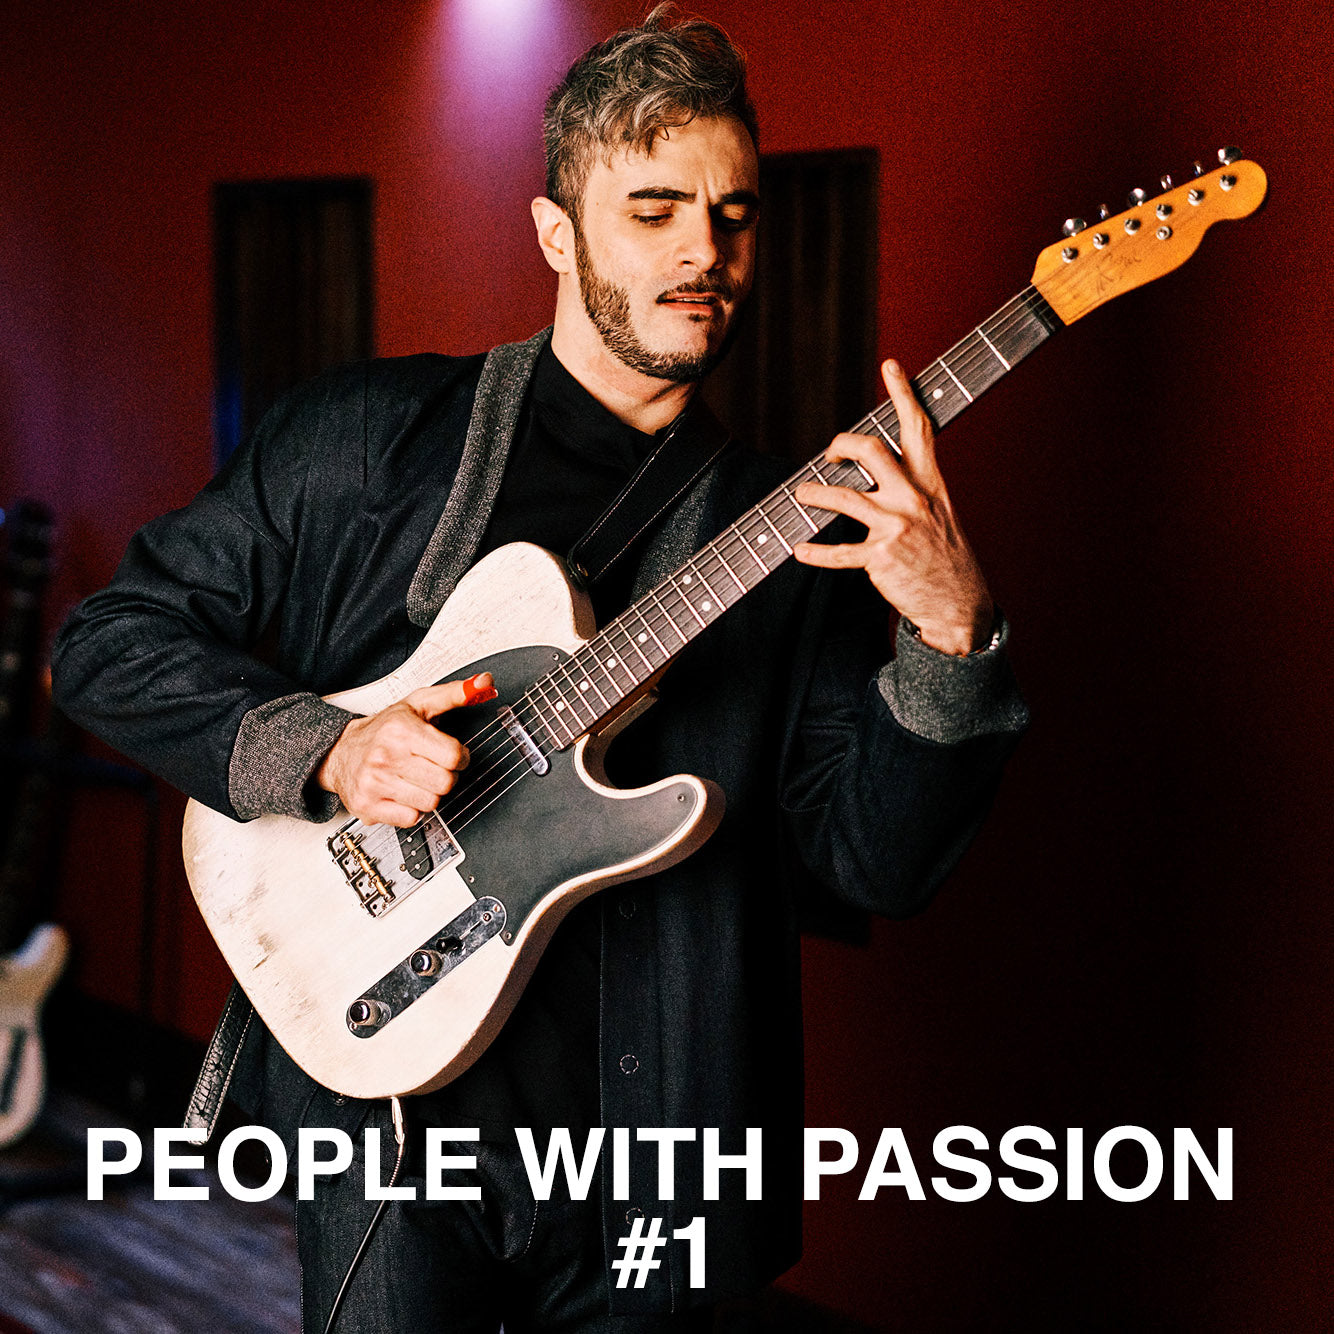 PEOPLE WITH PASSION #1